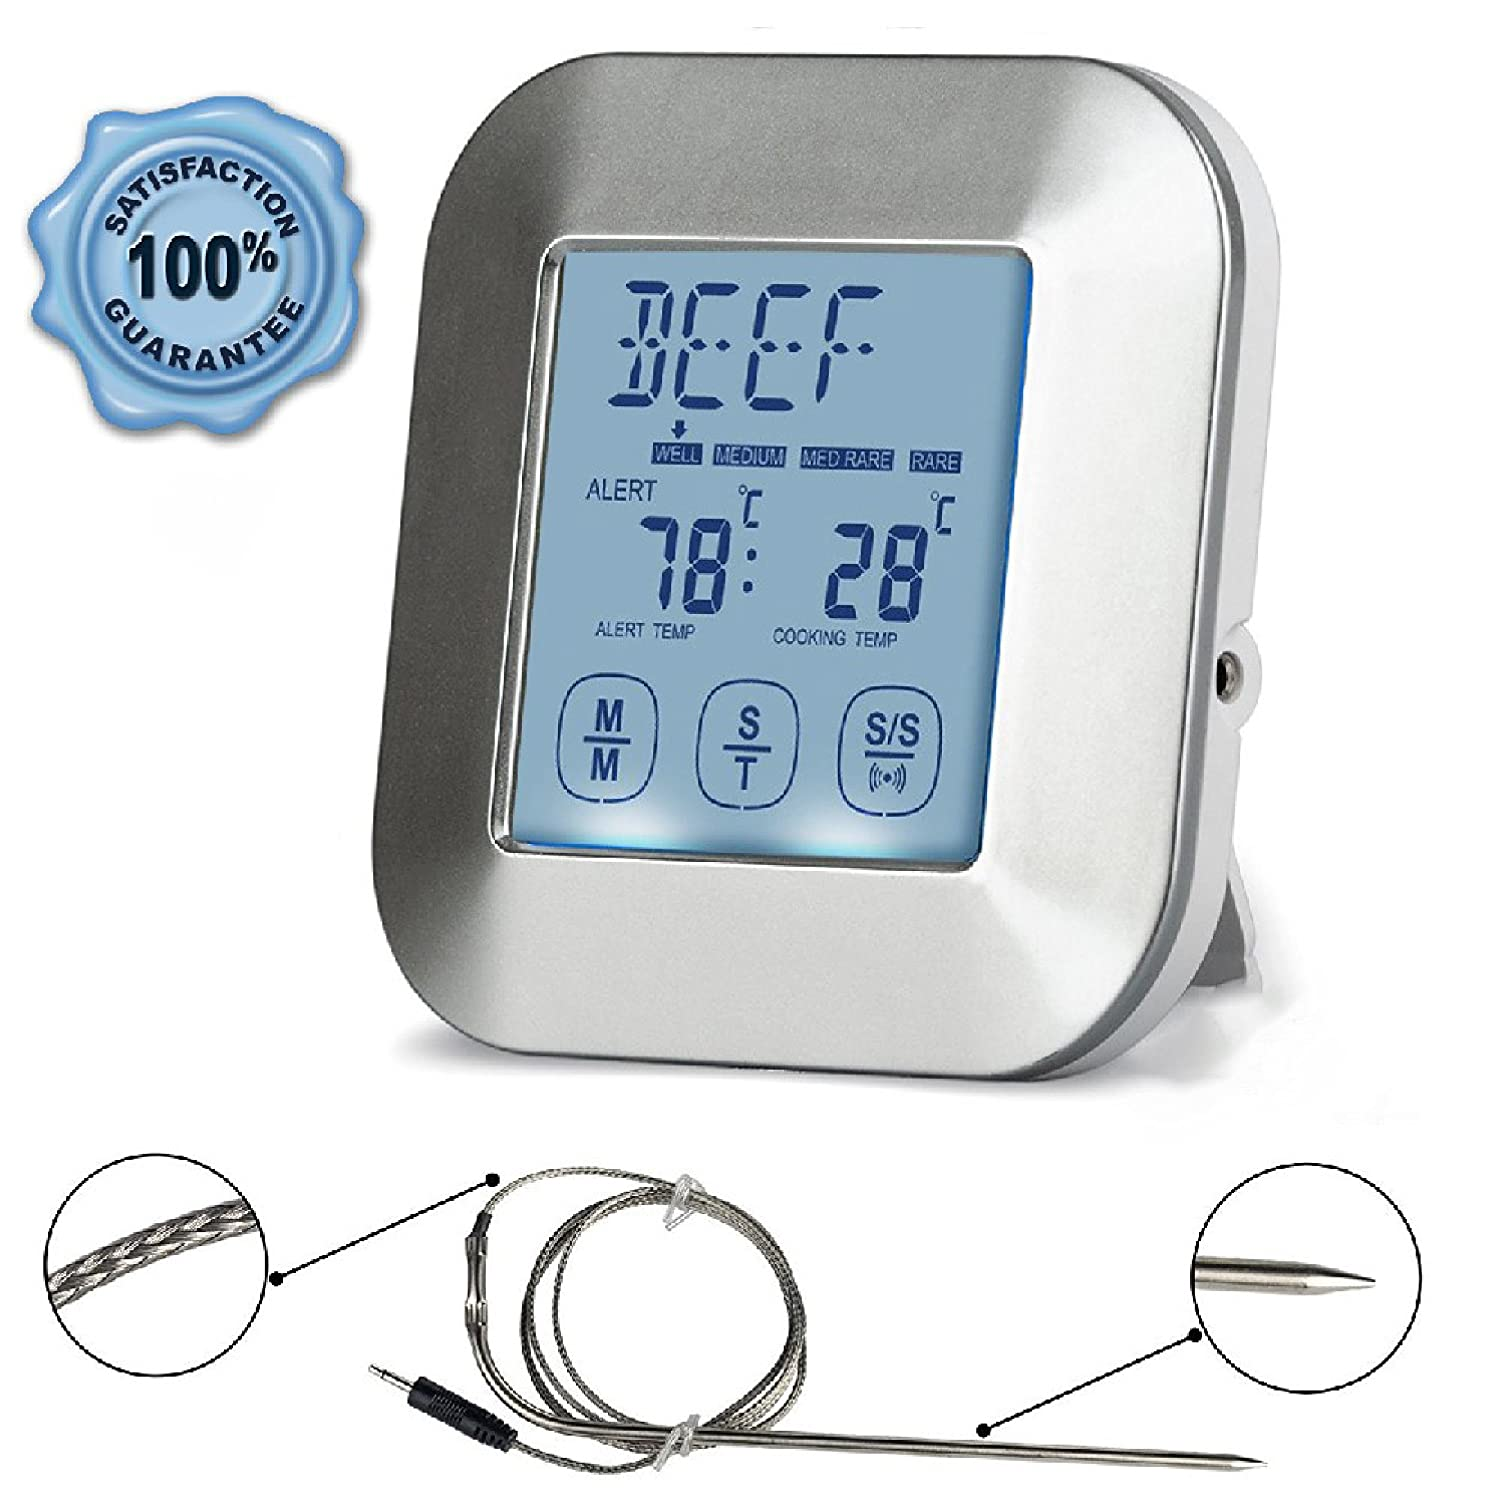 Digital Cooking Thermometer; Food Grade Stainless Steel Single Probe; Touchscreen, Timer and Magnet; Best for Meat, Poultry or Fish; Roast, Smoke or Bake; Barbecue Pit, Steak Grill or Kitchen Oven